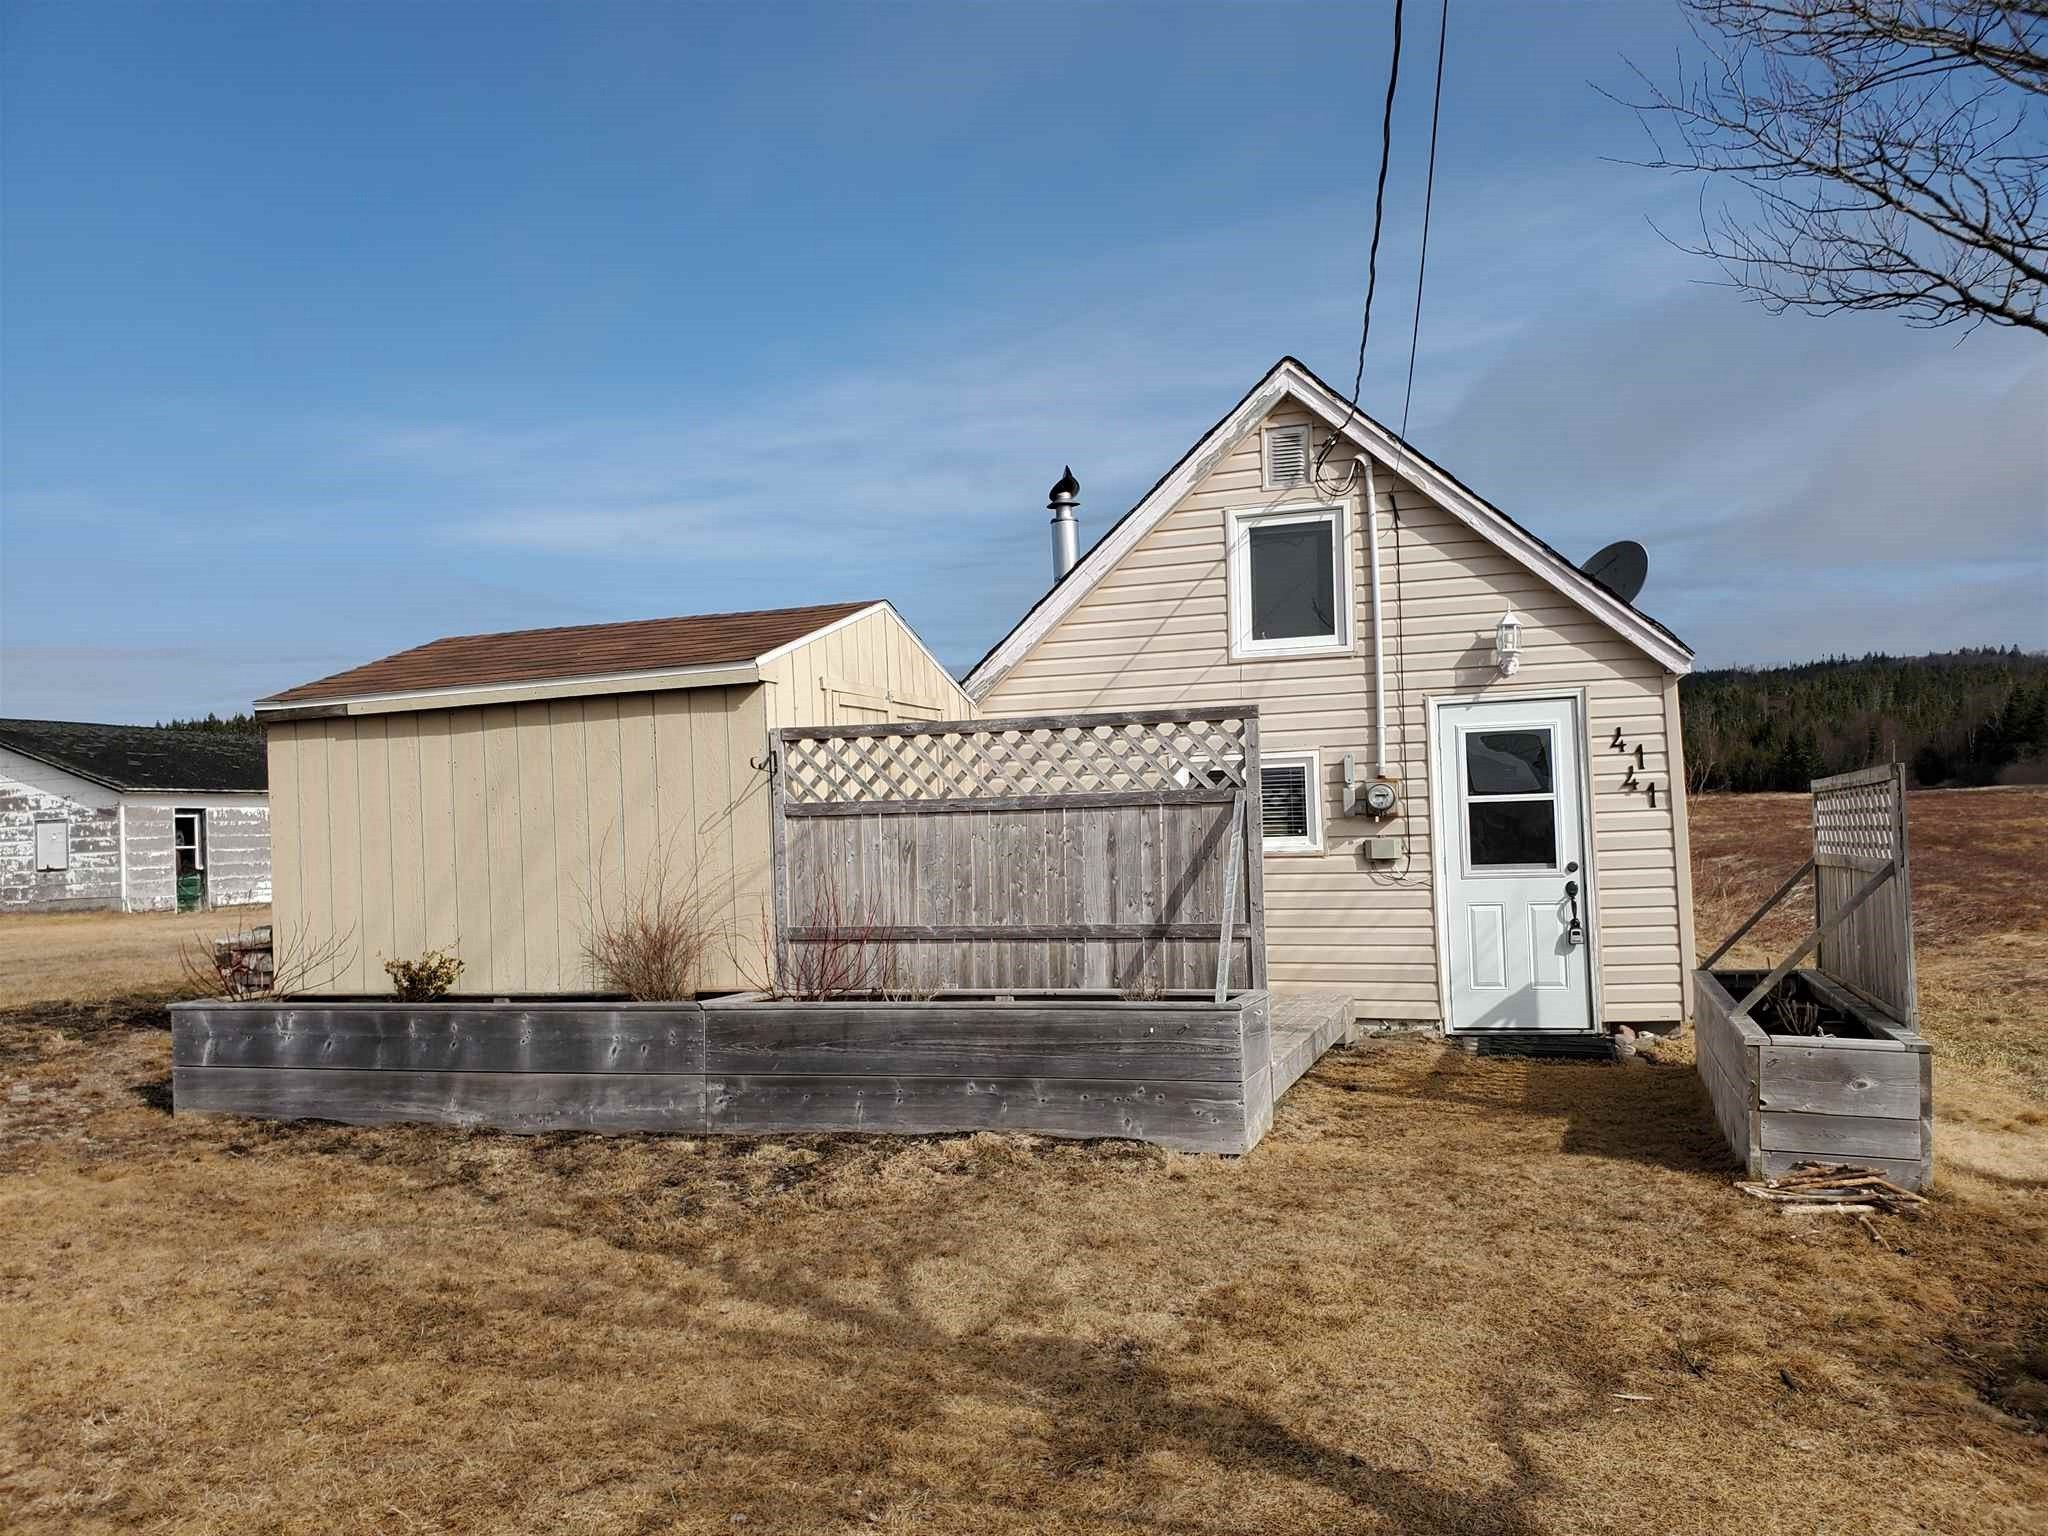 Main Photo: 4141 Highway 209 in Advocate: 102S-South Of Hwy 104, Parrsboro and area Residential for sale (Northern Region)  : MLS®# 202105946